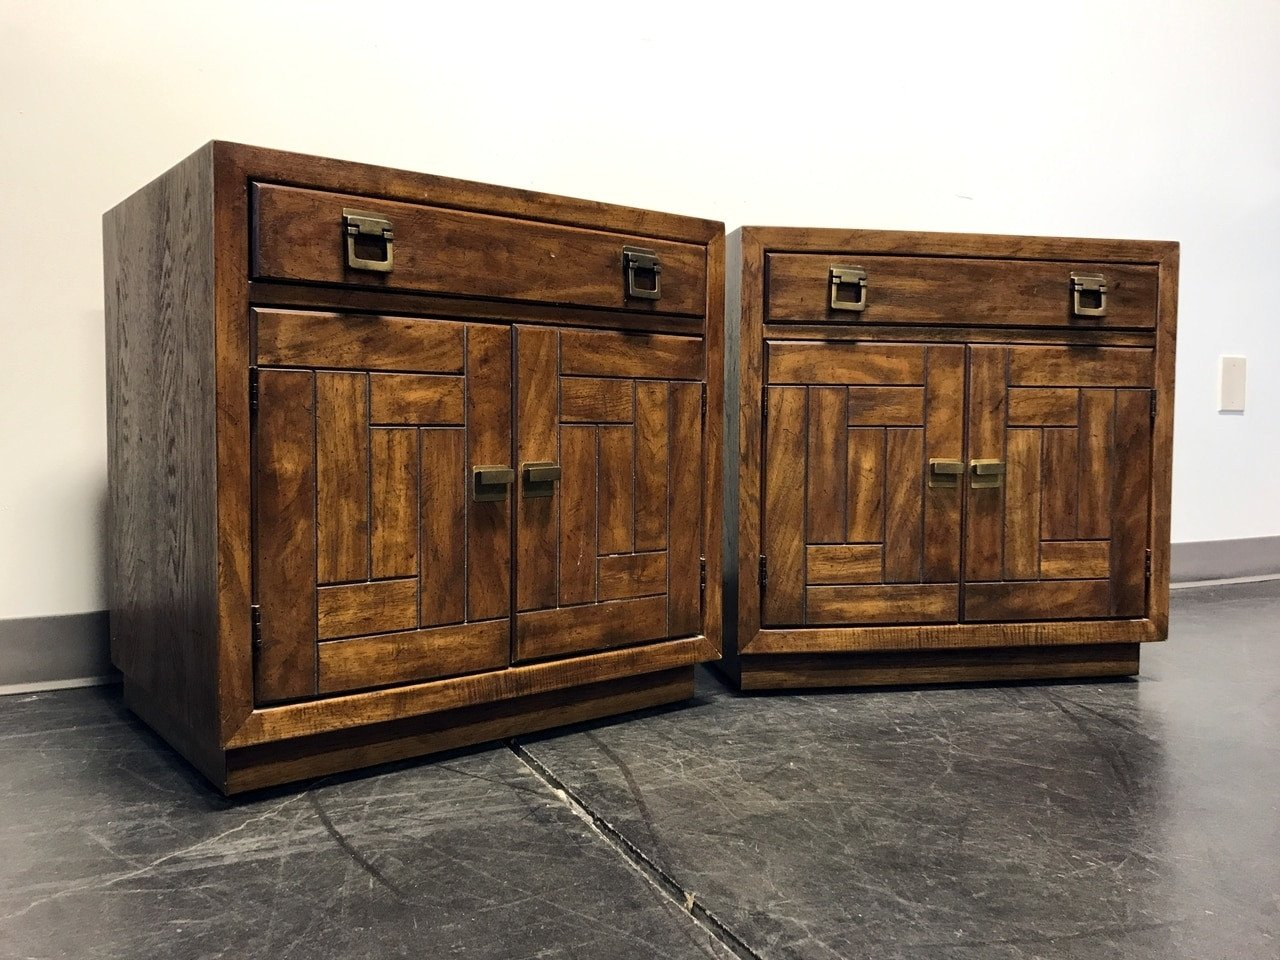 DREXEL HERITAGE Woodbriar Pecan Campaign Style Bedside Chests Nightstands Pair 4 Boyds Fine Furnishings